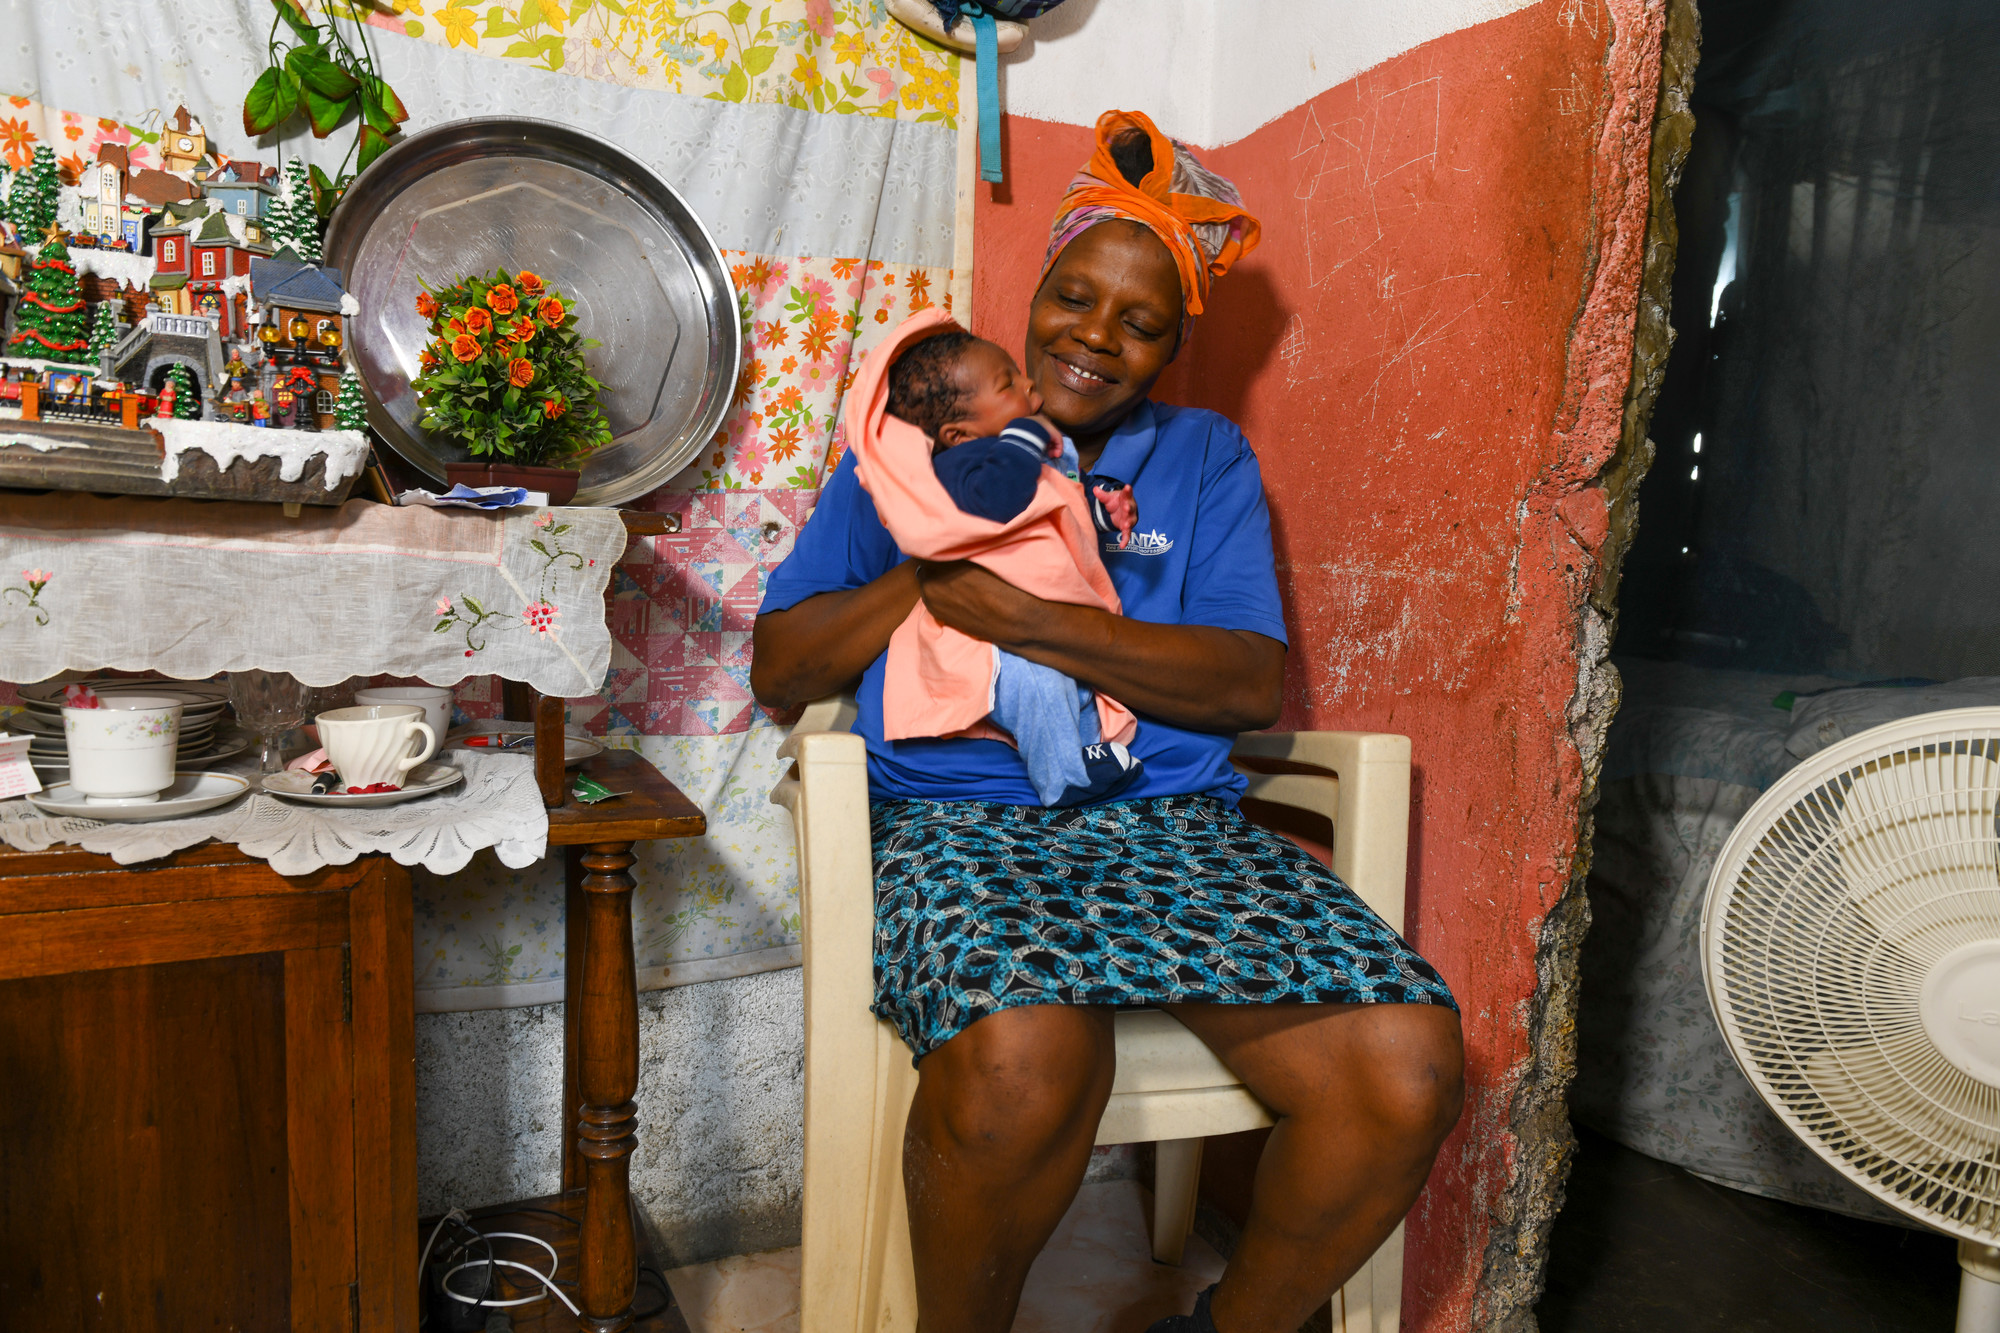 Natacha Louis and her child photographed in Haiti after an earthquake wrecked havoc in the Grand-Anse region in Southn Haiti earlier in August.